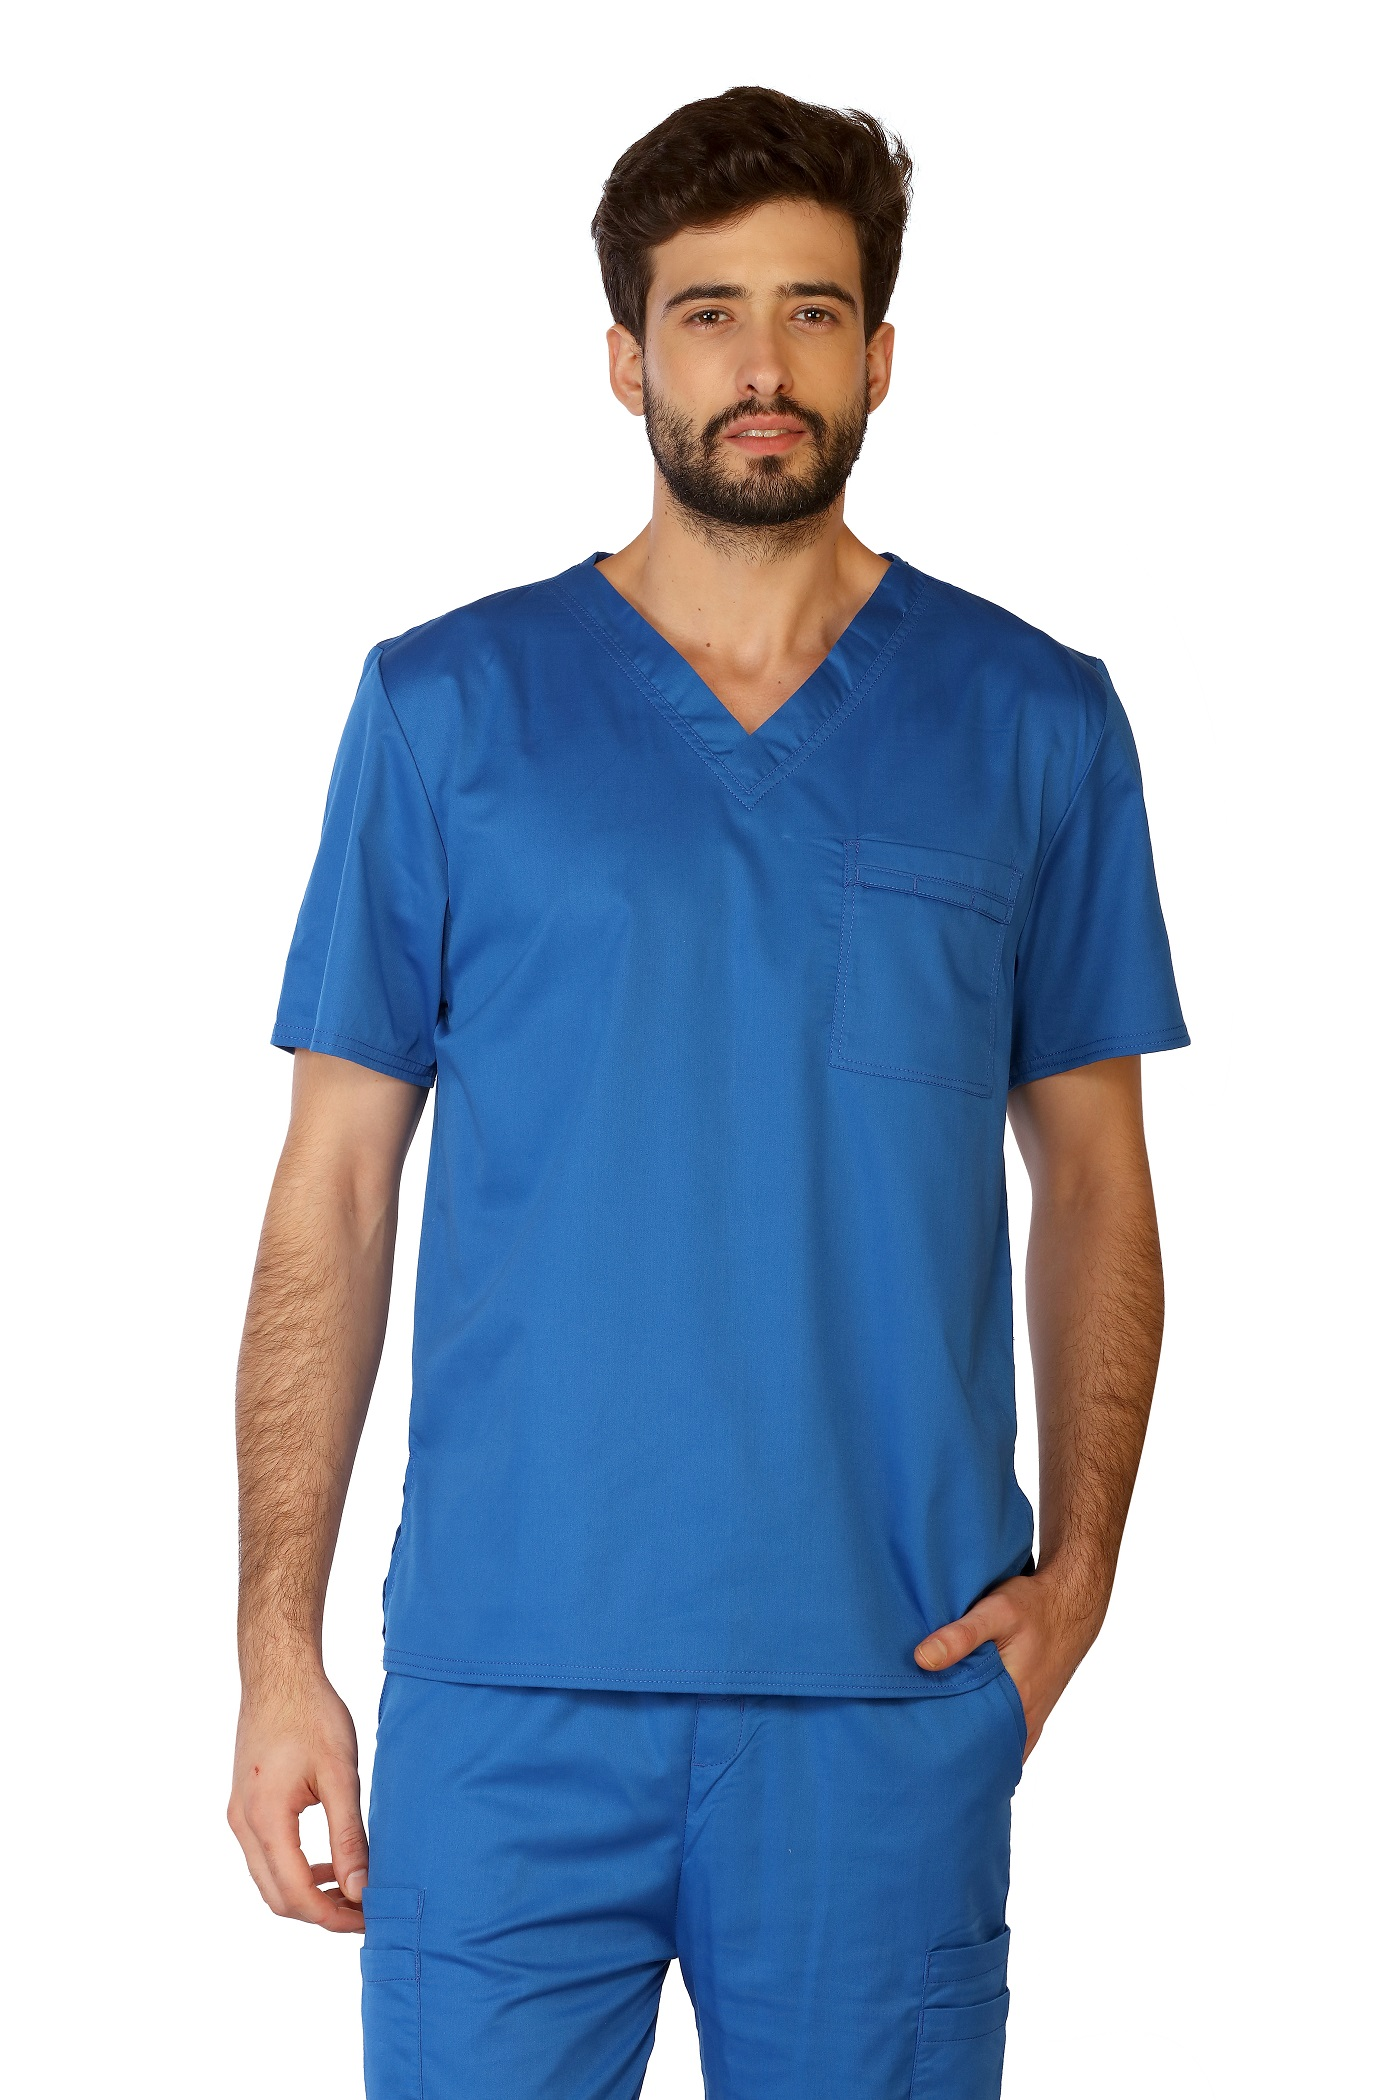 Unisex Stretch Scrub Top, LifeThreads Contego Collection